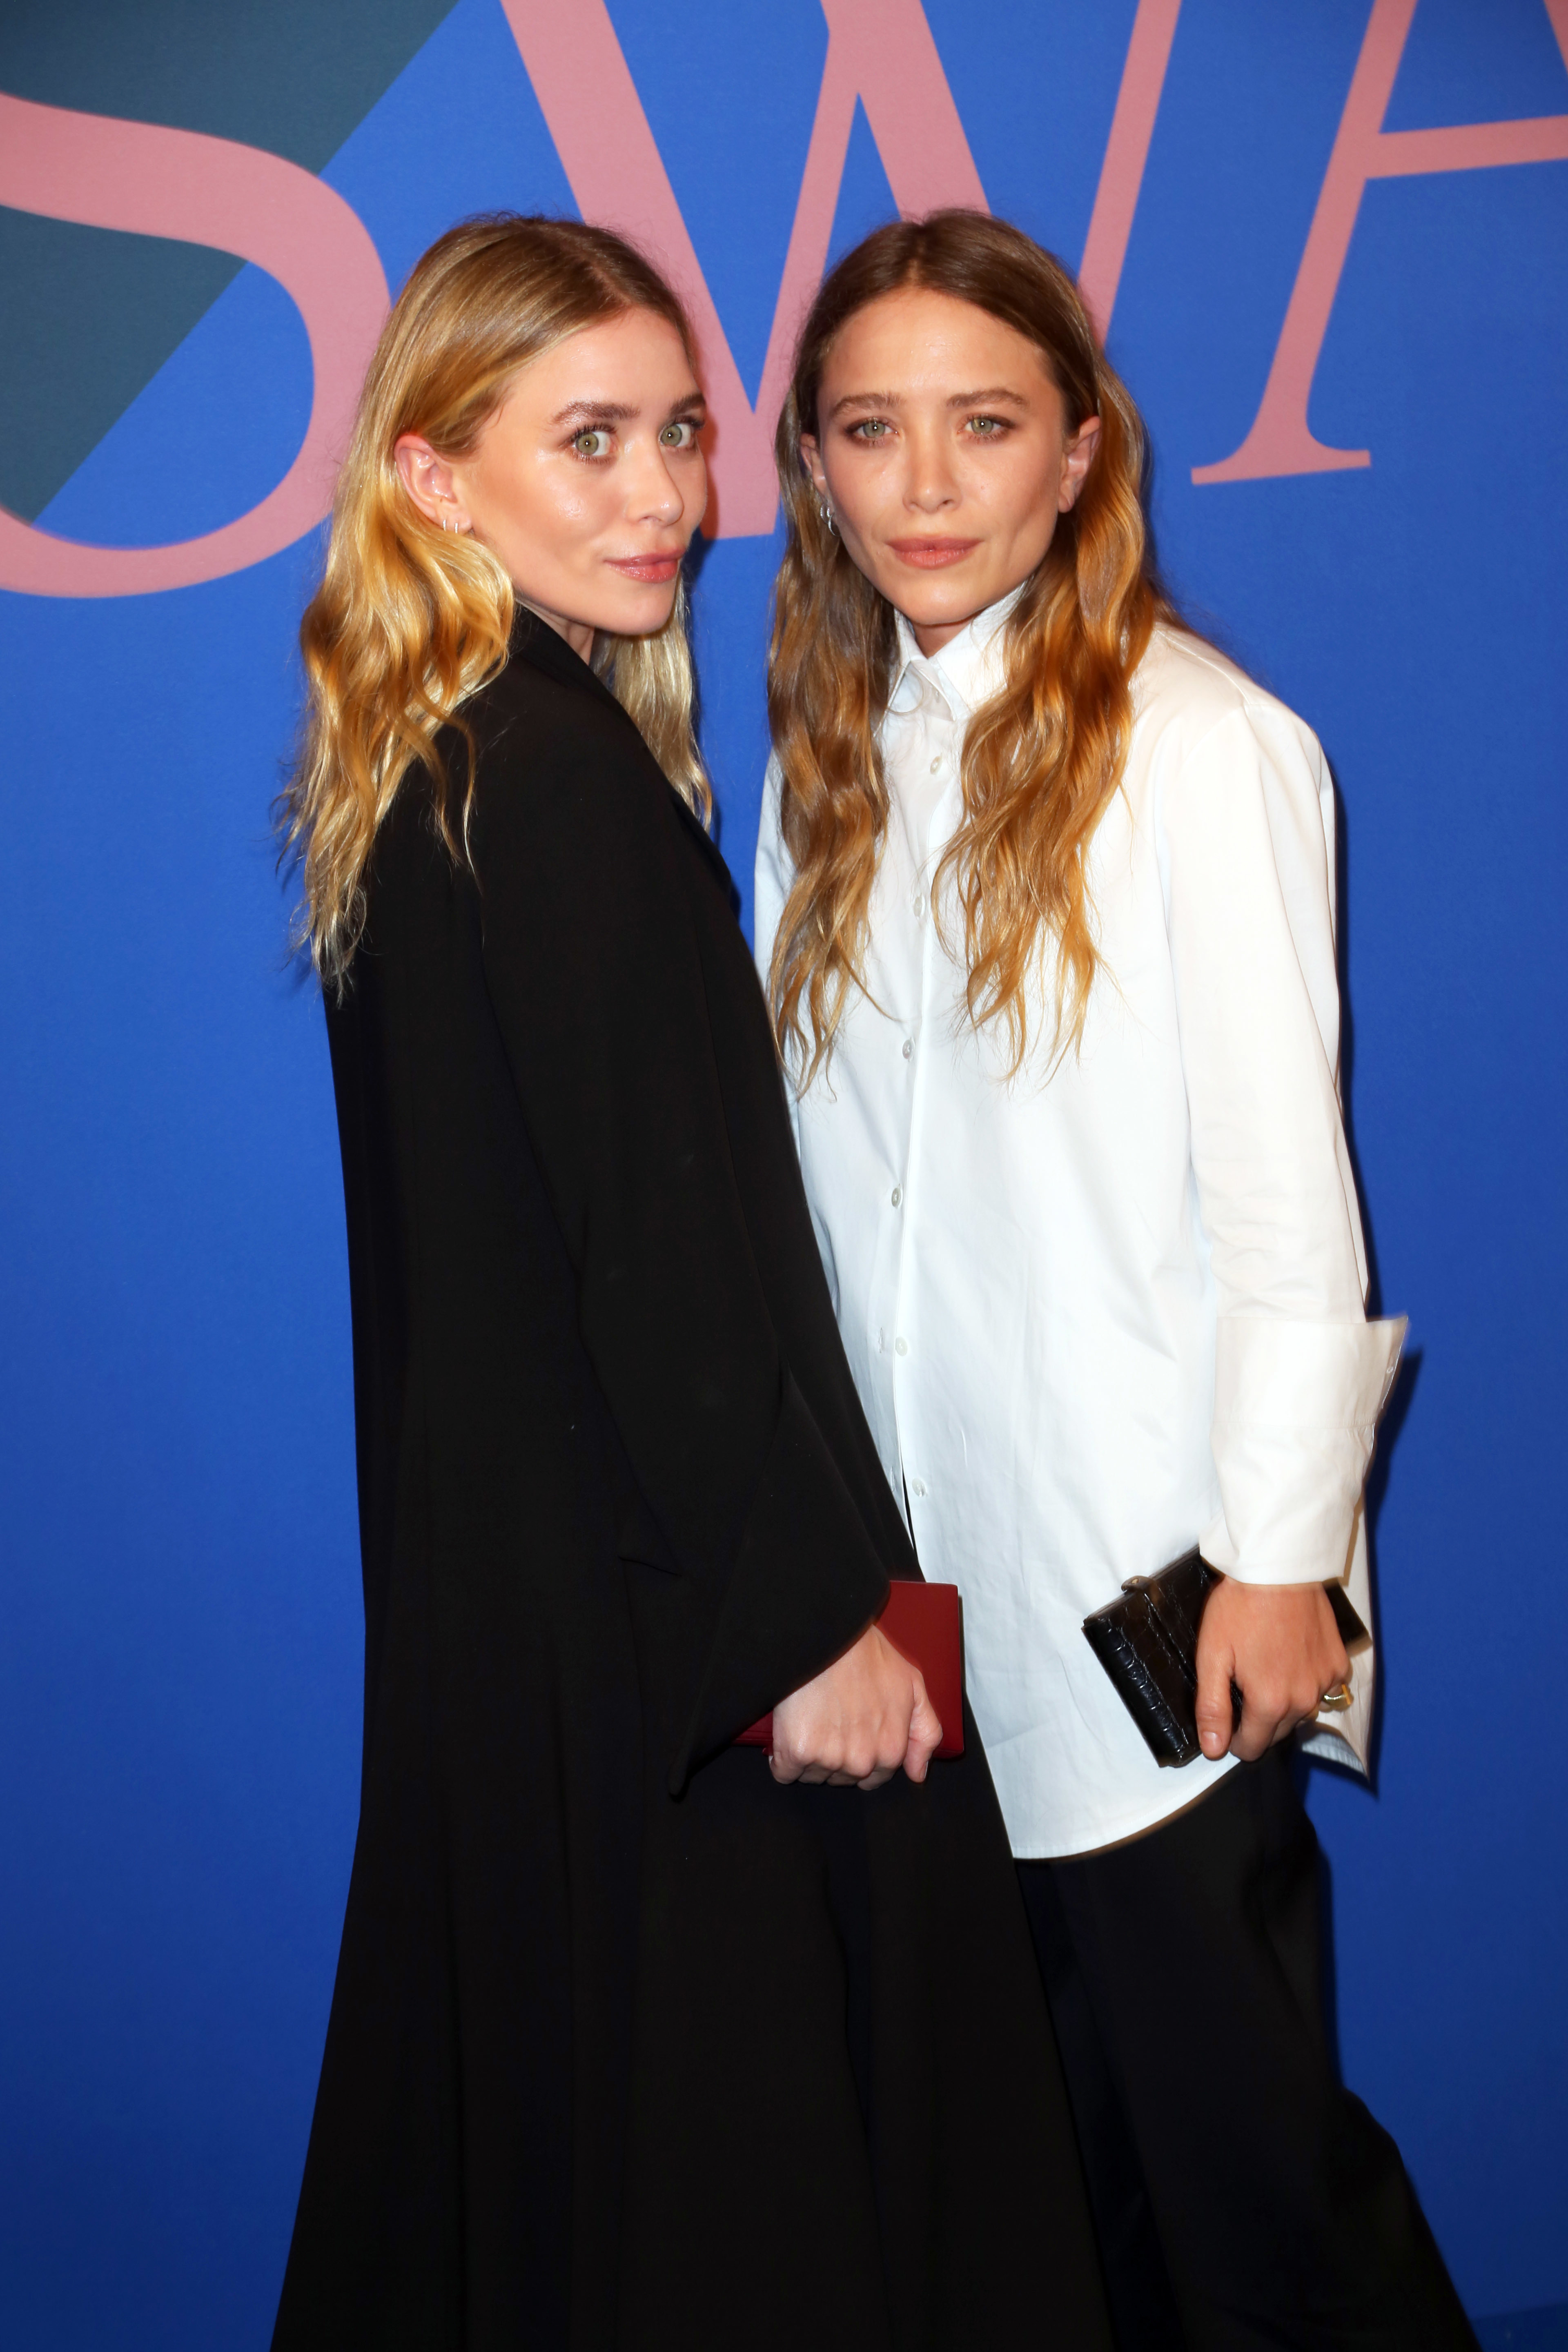 Ashley Olsen and Mary Kate Olsen attend the 2016 CFDA / Vogue Fashion Fund Awards  in New York in June 5, 2017.